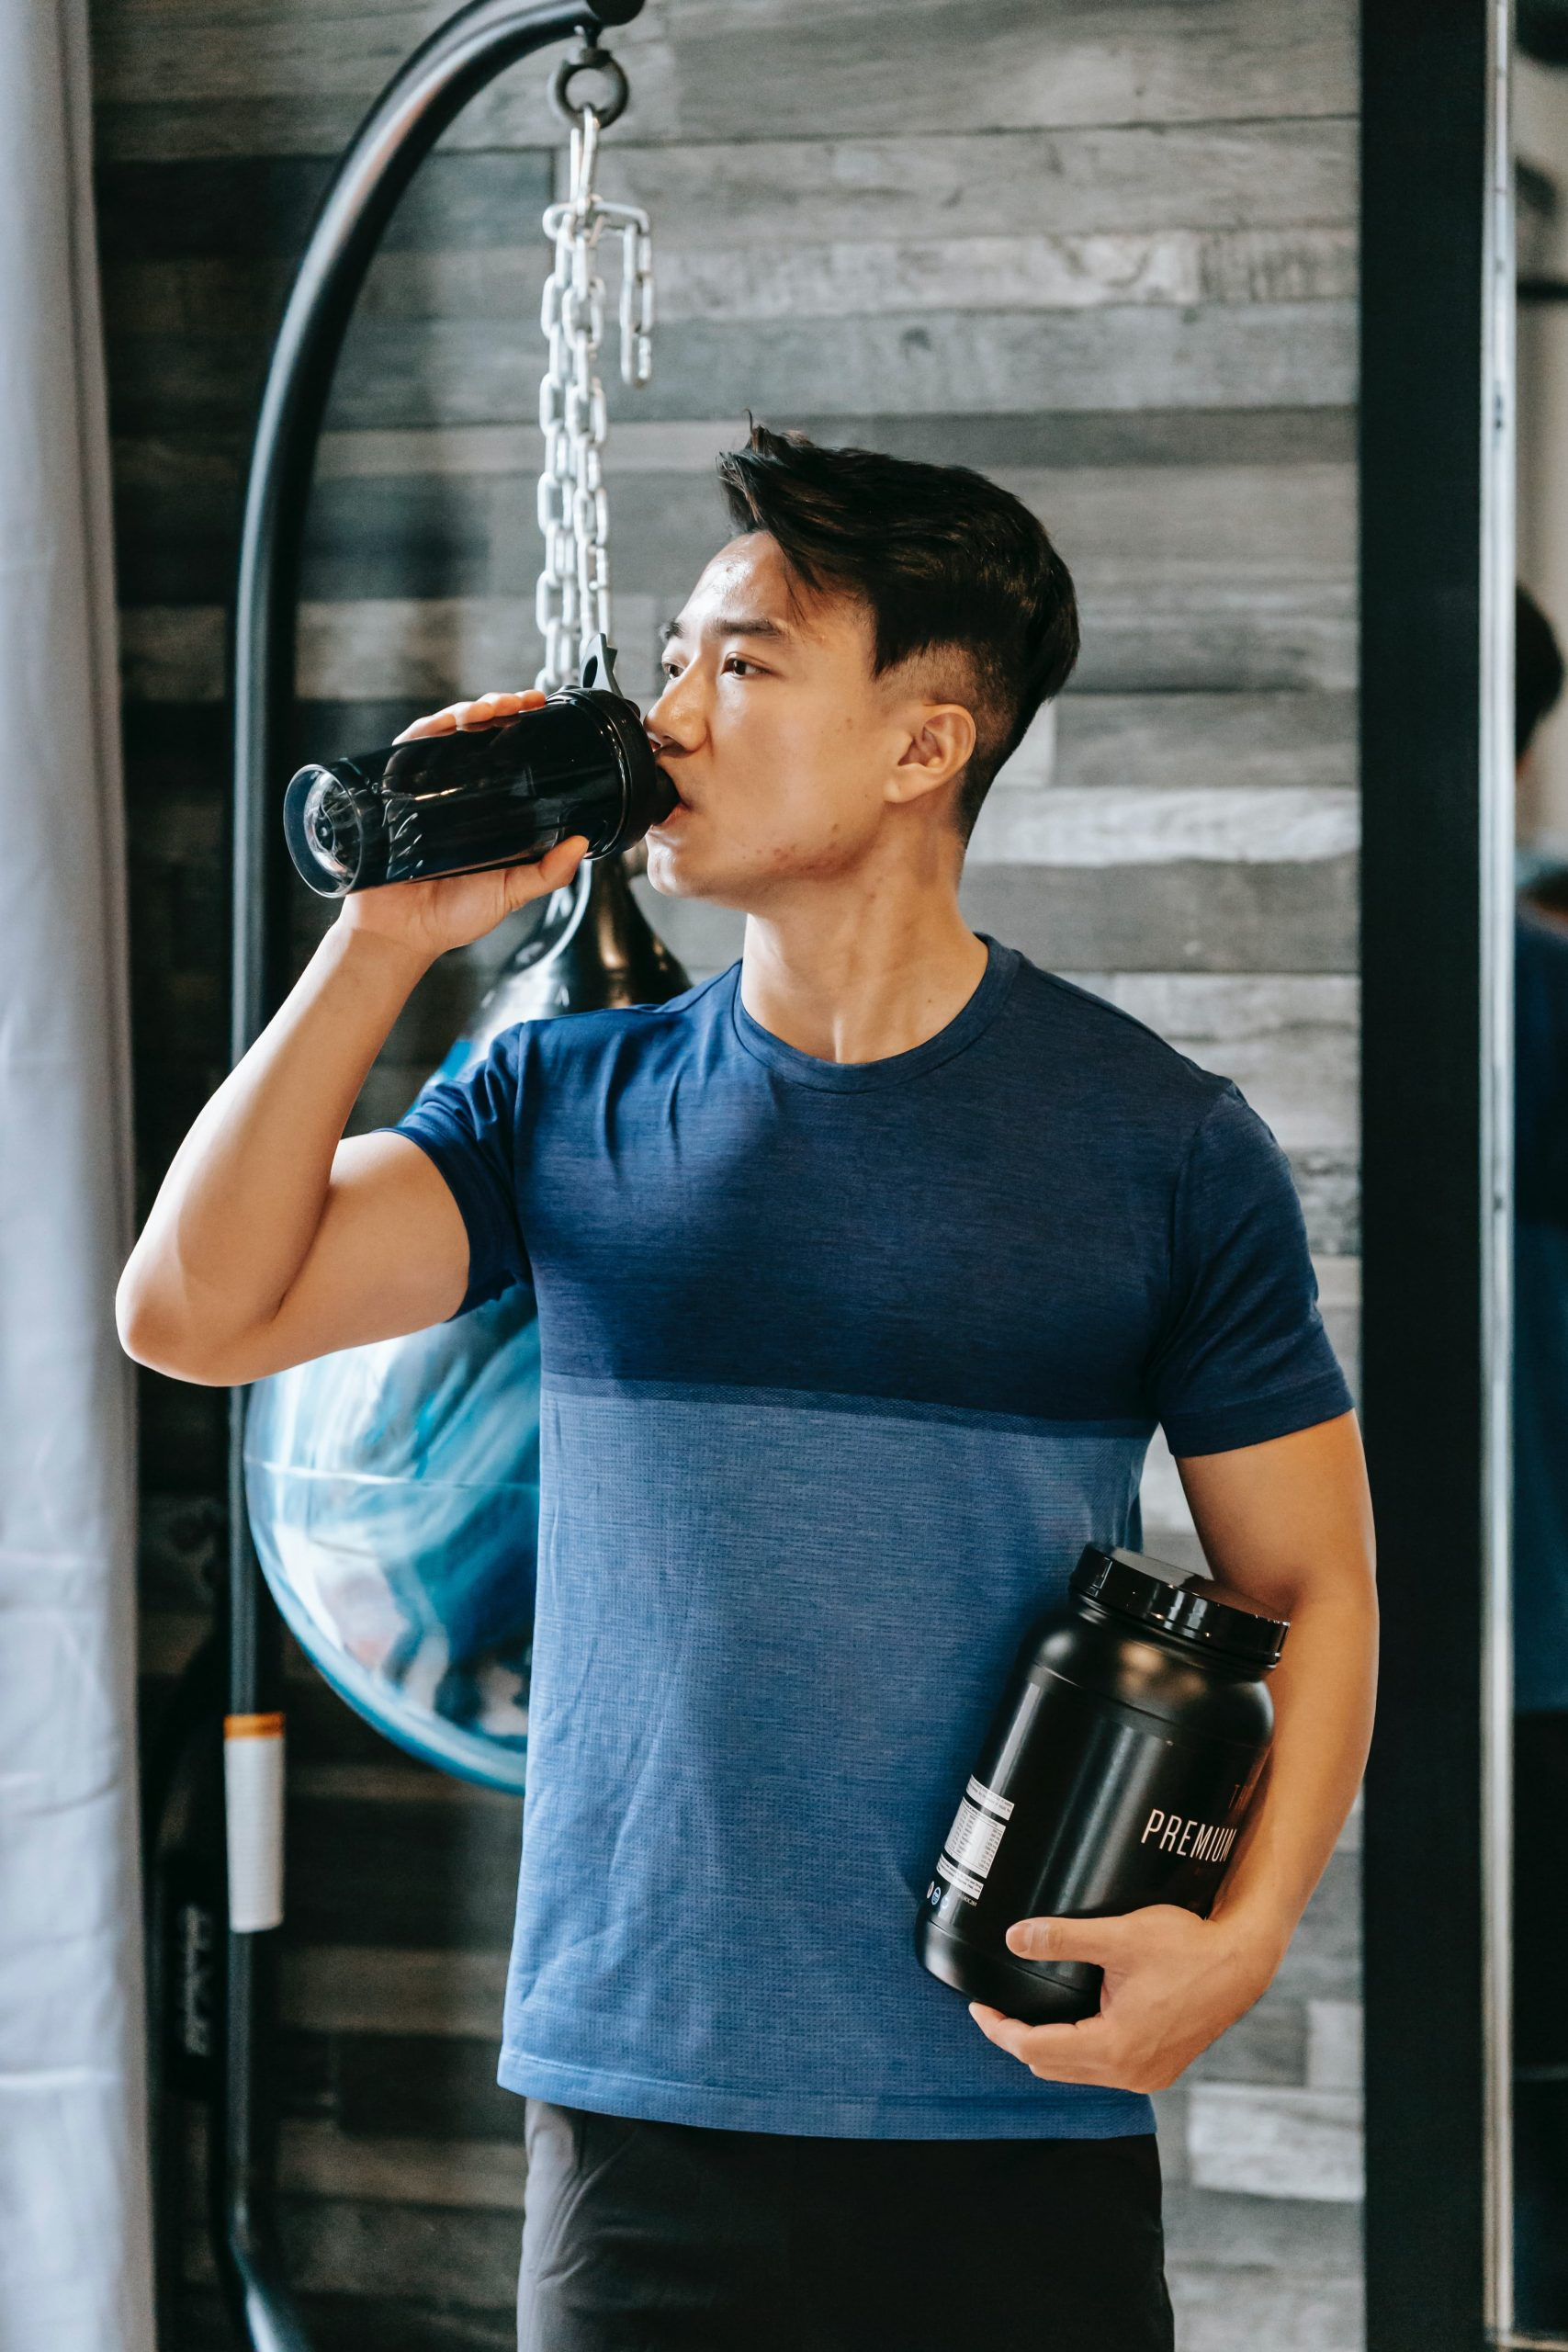 Why, Why A must-have for gym freaks to blend health drinks ?, Ntoofitness